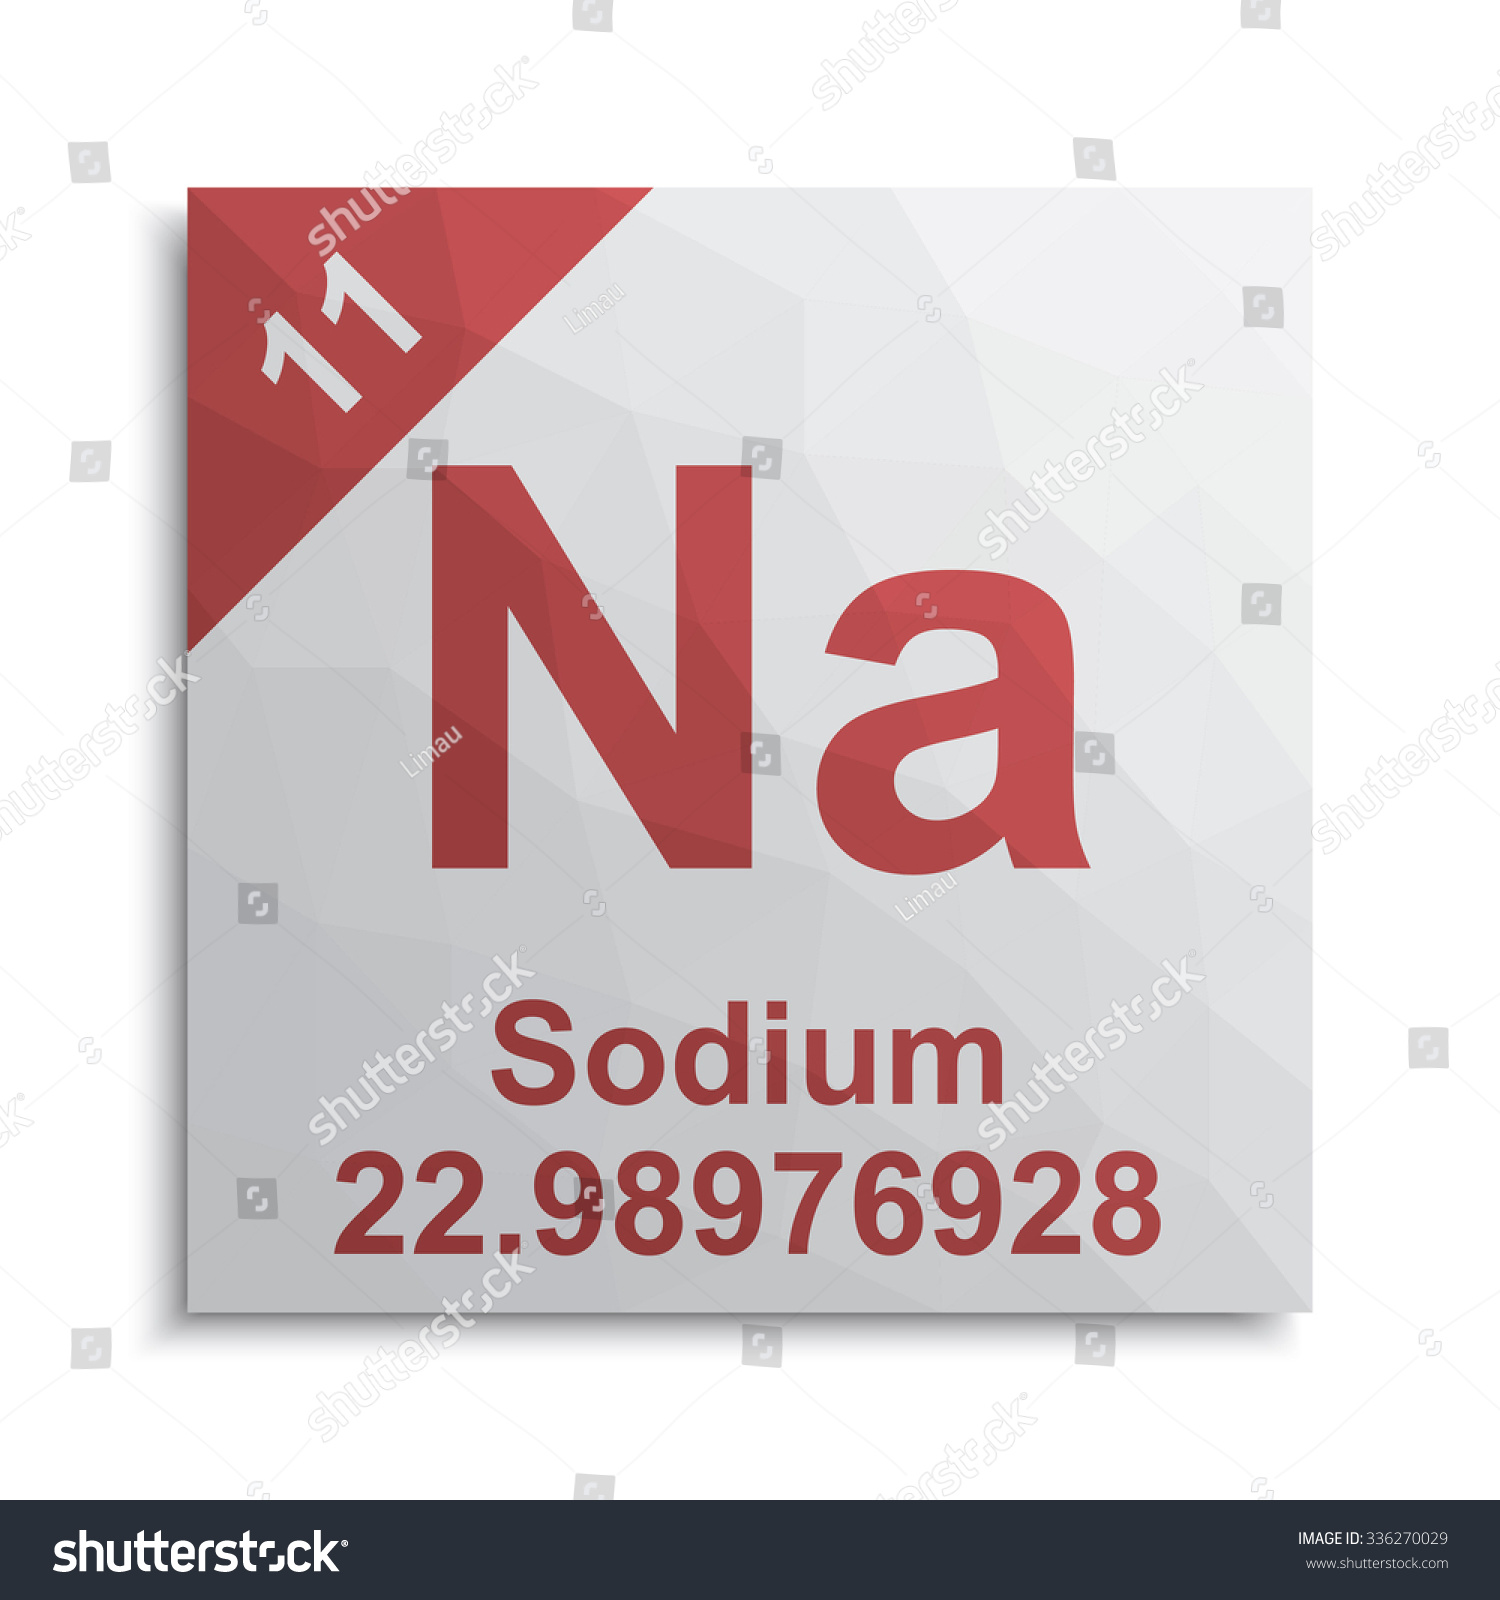 Sodium element periodic table stock vector 336270029 shutterstock sodium element periodic table gamestrikefo Image collections